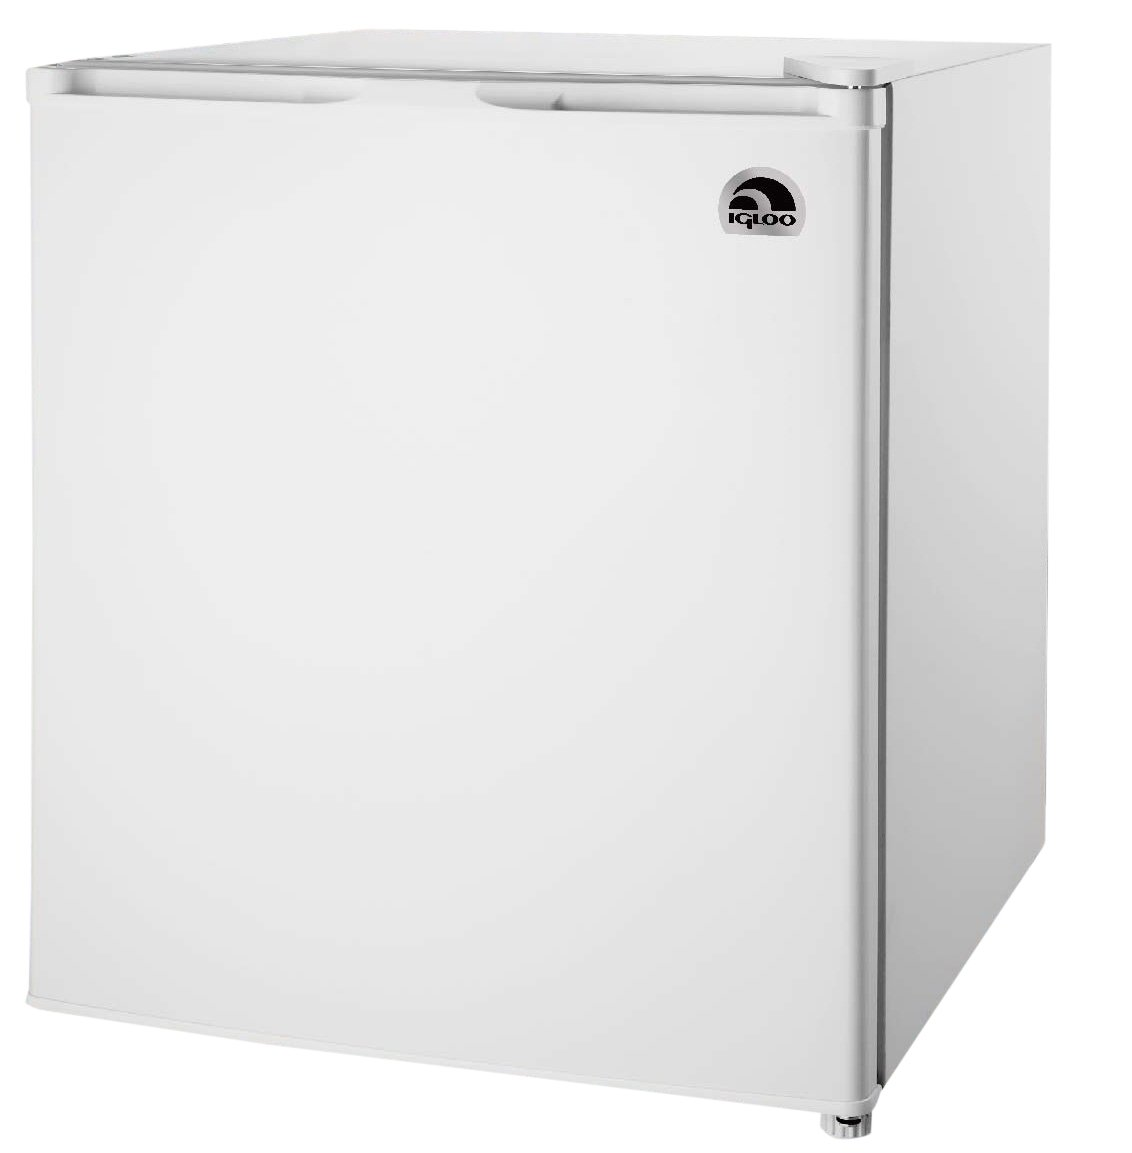 Igloo FRF110 Vertical Freezer, 1.1 cu. ft., White ...